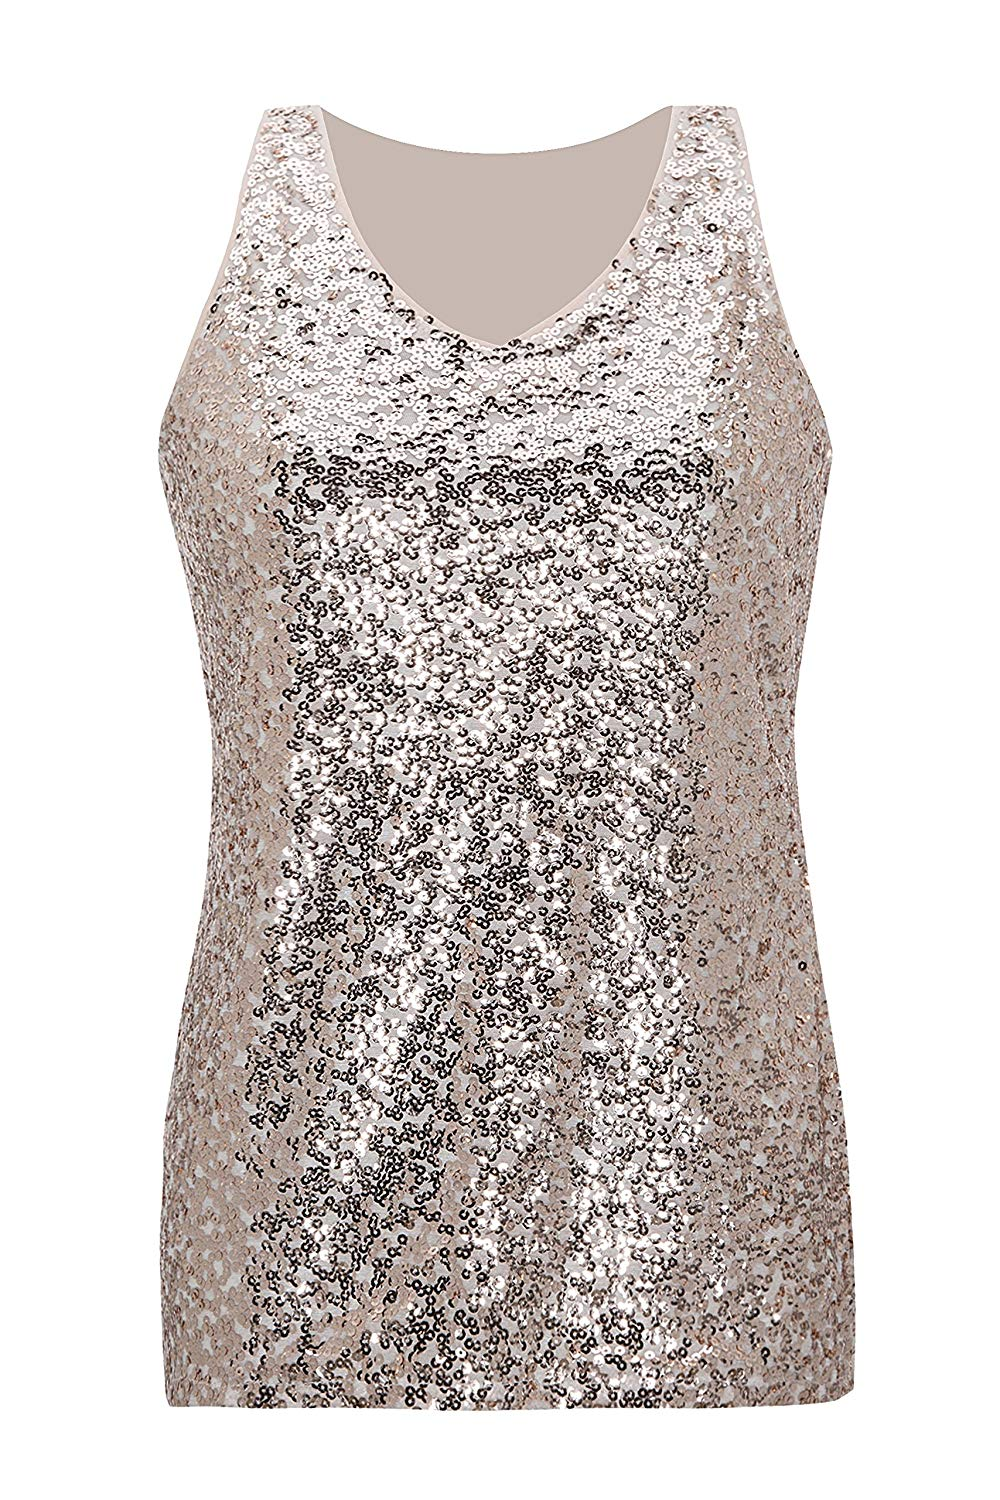 f84cbc87dfe Get Quotations · Metme Sleeveless Shirt V Neck Sequin Embellished  Close-Fitting Tank Tops Vest Tops